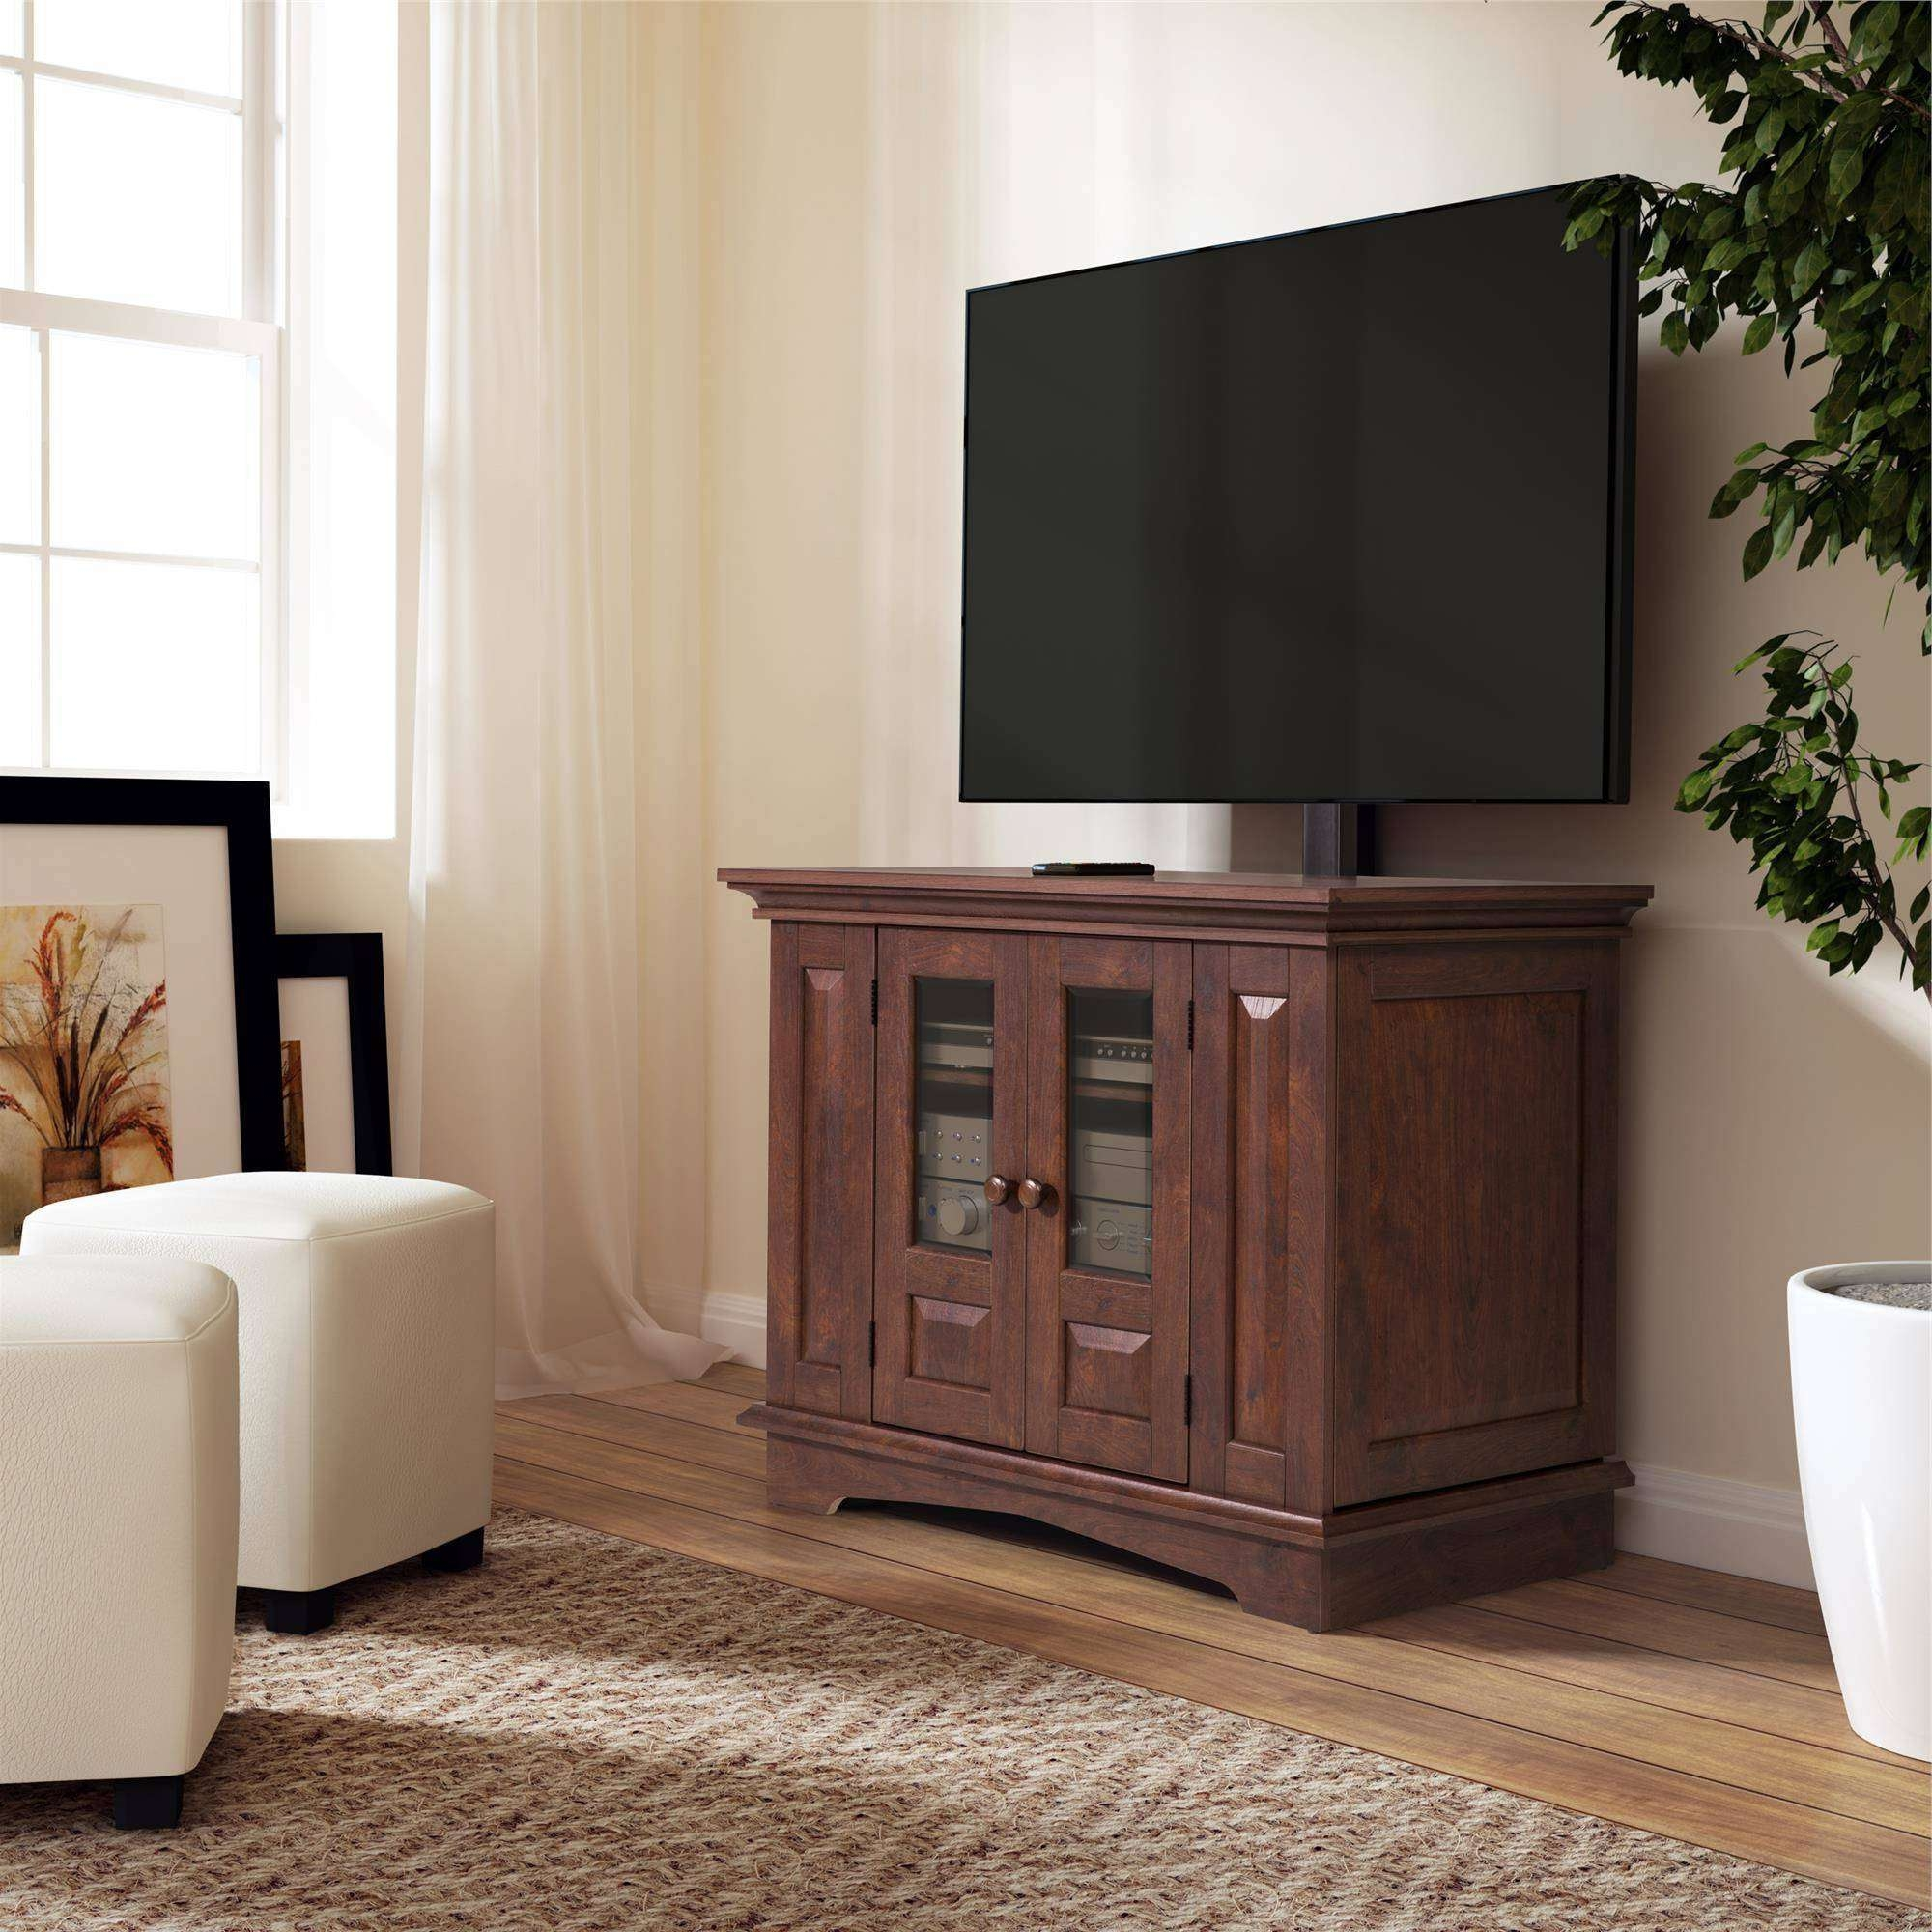 Willow Mountain Cherry Tv Stand With Mount, For Tvs Up To 37 Intended For Swivel Tv Stands With Mount (View 14 of 15)